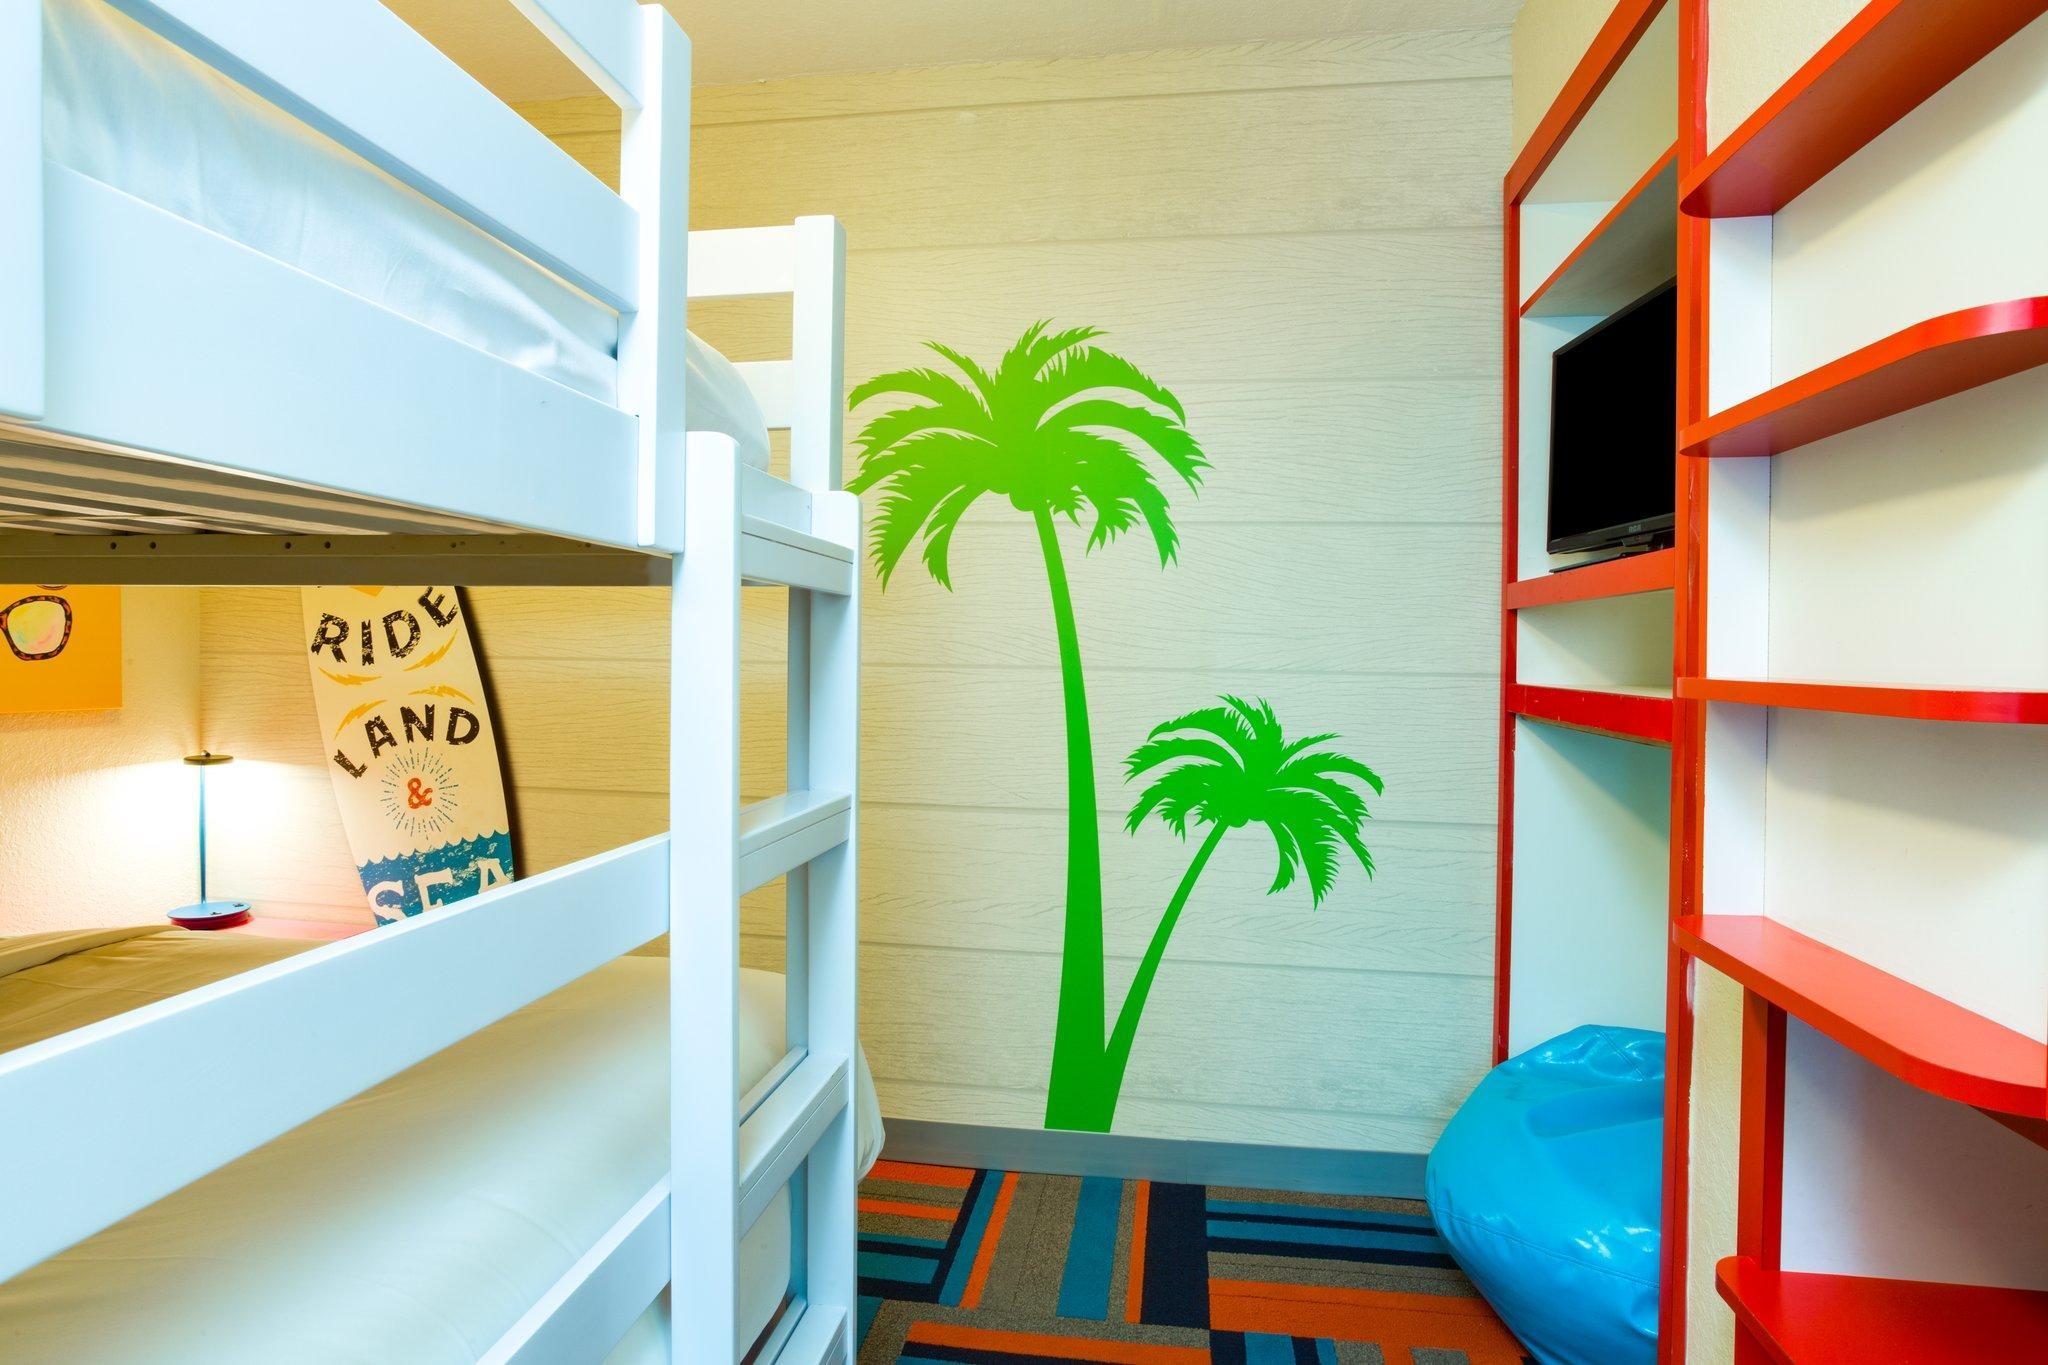 Best Price On Holiday Inn Resort Orlando Suites Waterpark In Orlando Fl Reviews,Ikea Floating Shelves Shoes